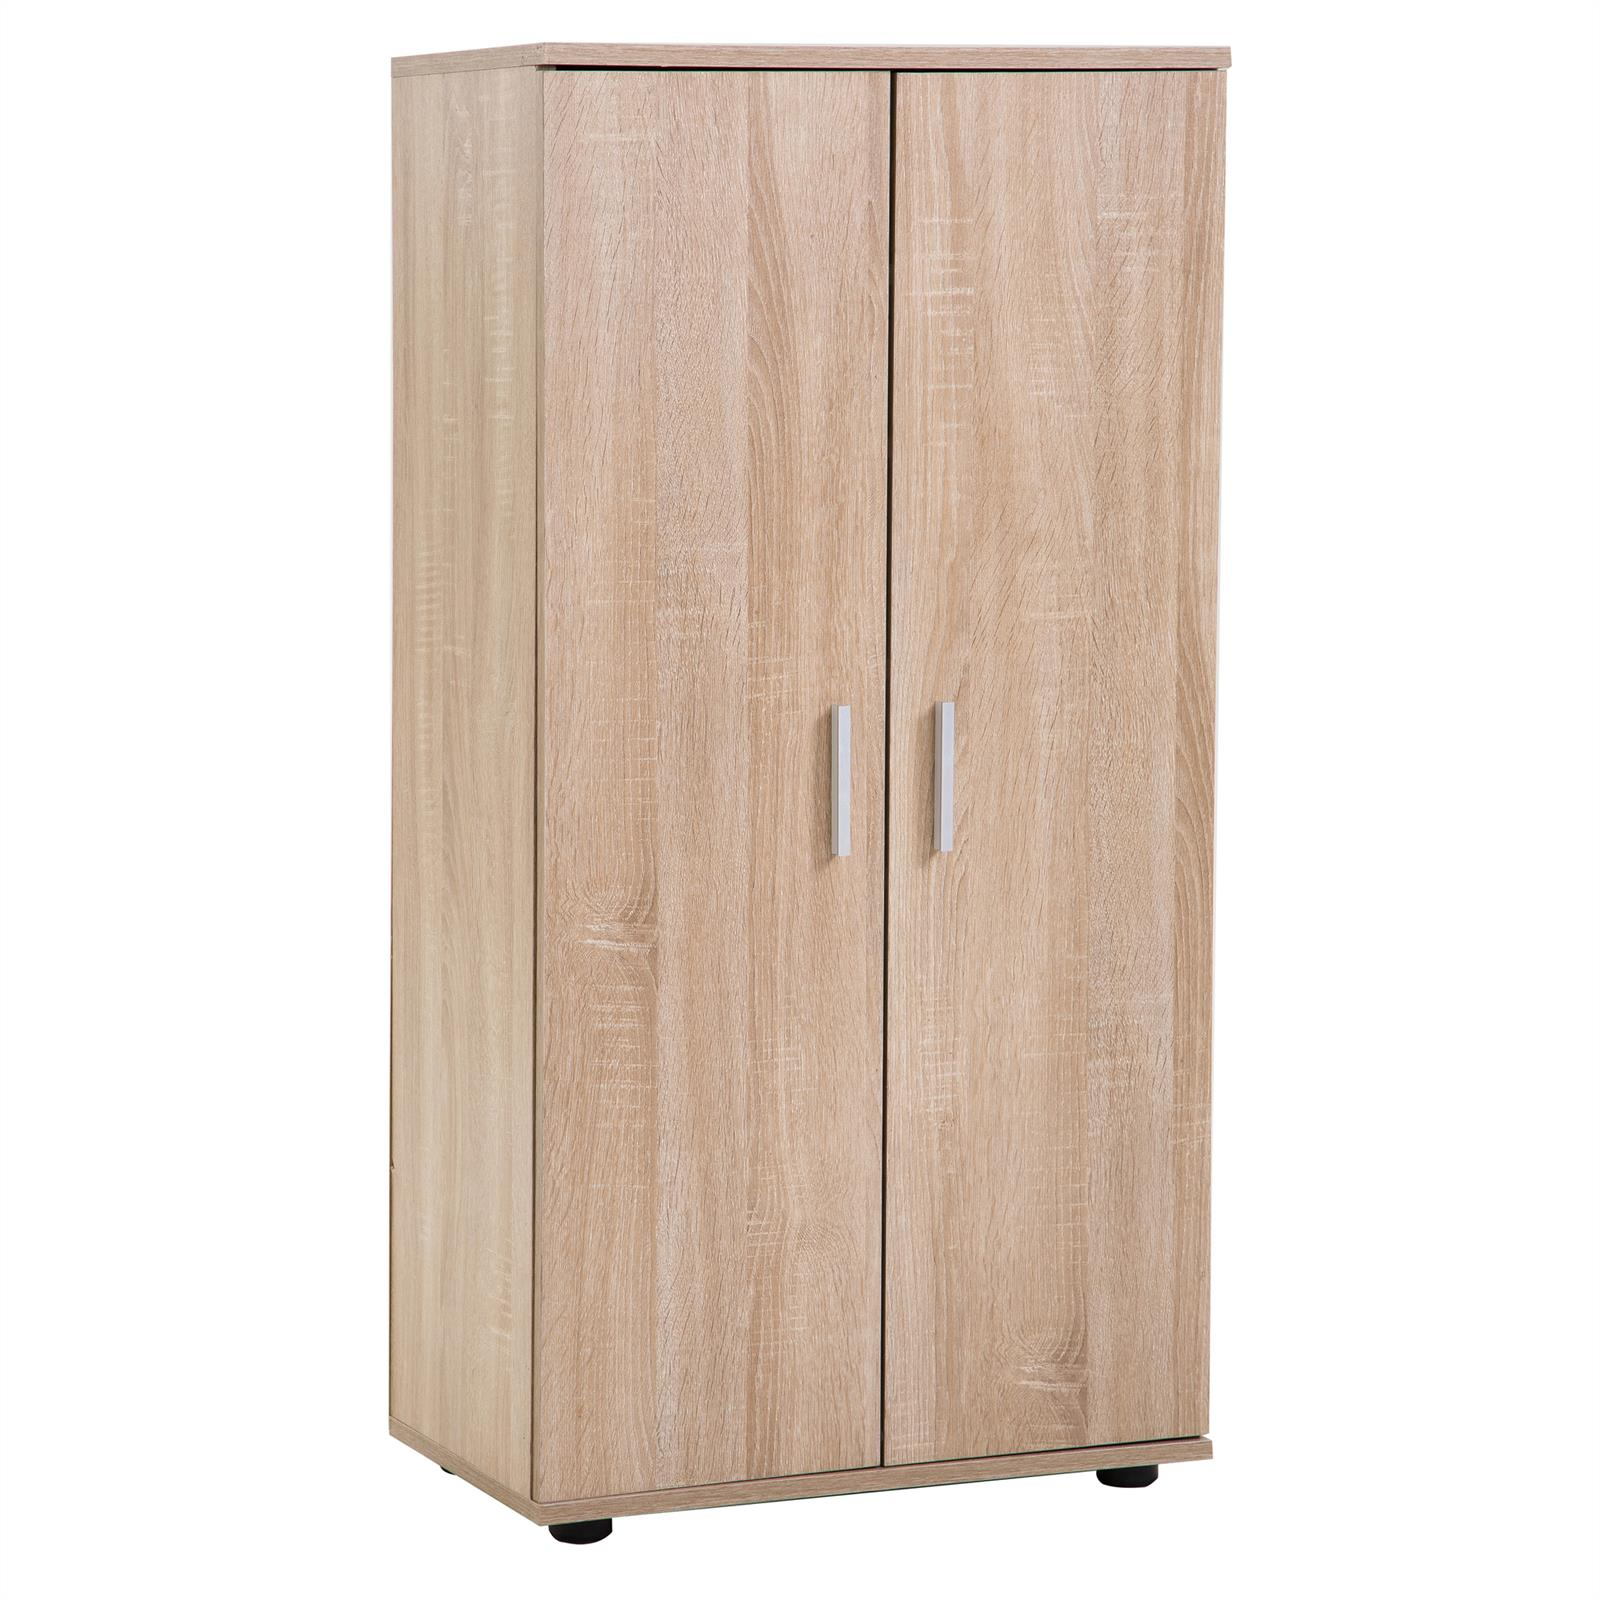 armoire meuble chaussures rangement 6 tag res 2 portes 2 coloris disponibles ebay. Black Bedroom Furniture Sets. Home Design Ideas